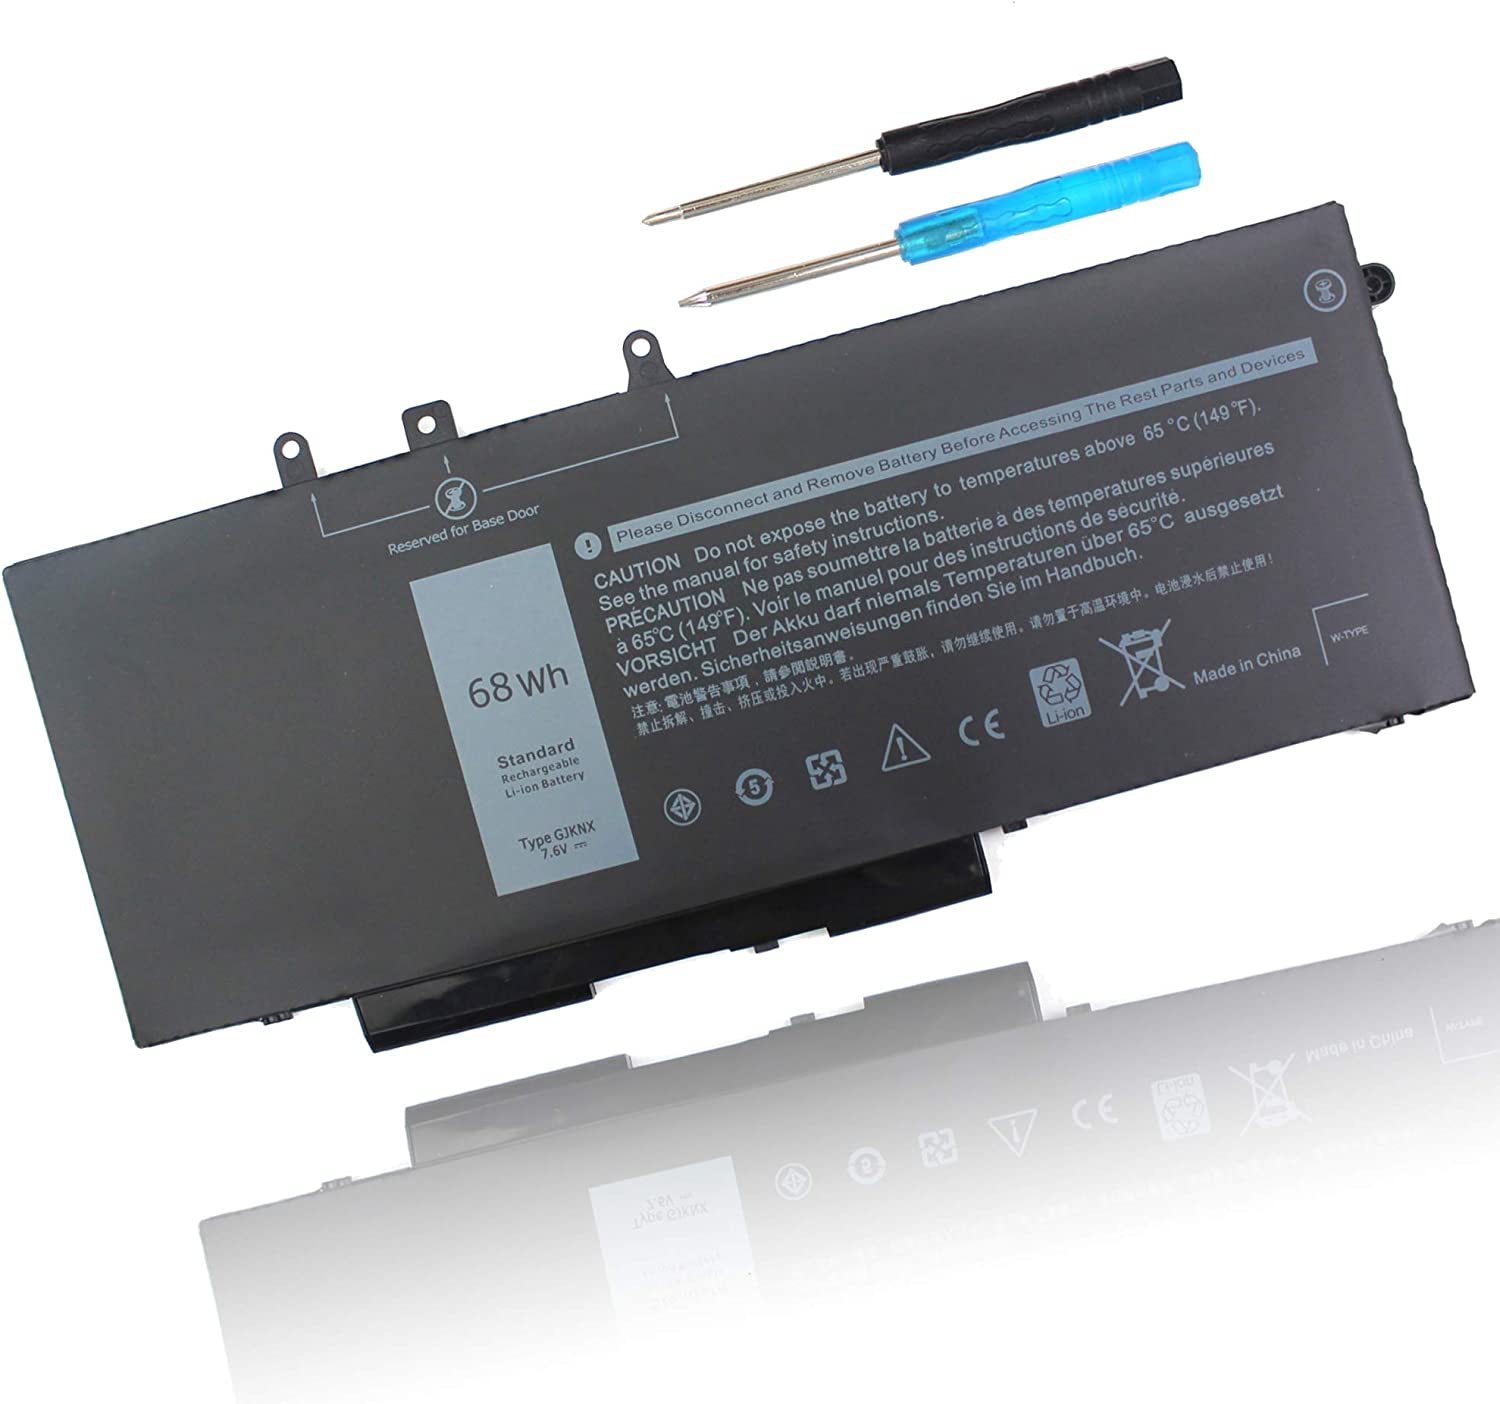 BE·SELL 68Wh 5YHR4 GJKNX Laptop Battery Replacement for Dell Latitude 5280 5480 5490 5491 5580 5590 5591 E5480 E5490 E5580 E5590 Precision GD1JP 0GD1JP DY9NT 0DY9NT 451-BBZG -12 Months Warranty